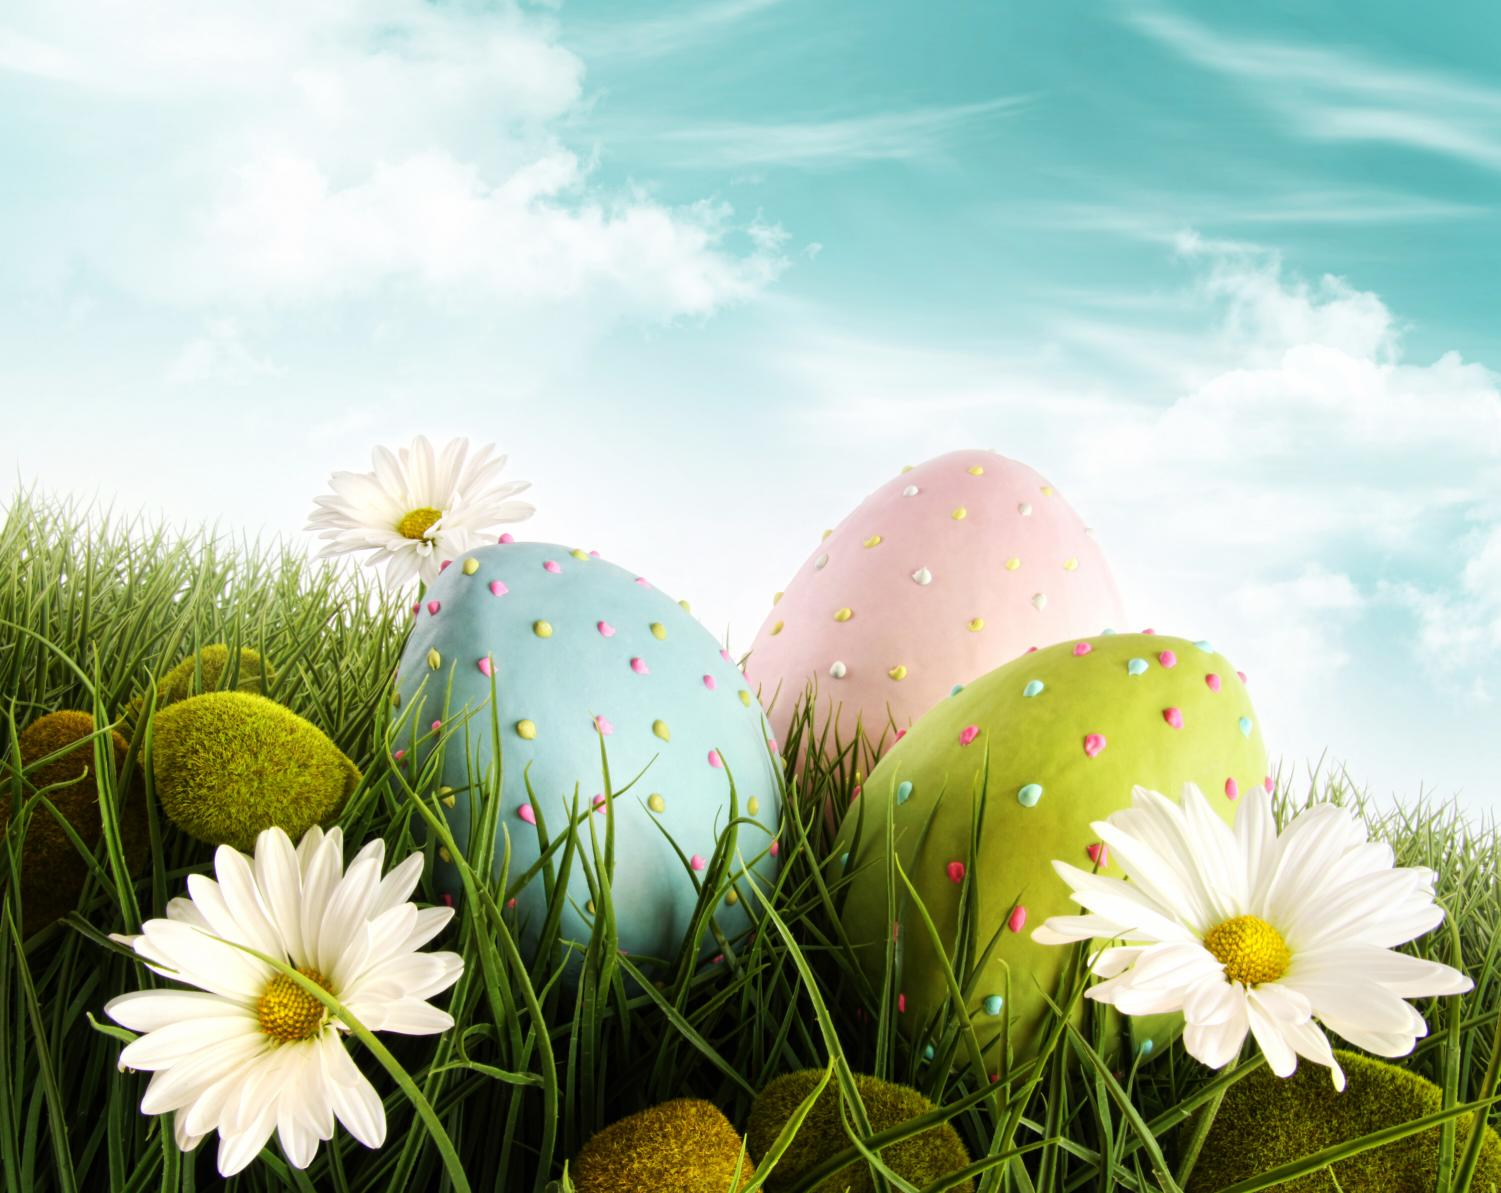 Coloring and dyeing Easter eggs dates back to ancient Egyptian days where they would dye eggs to celebrate the Spring.		           		        Image courtesy of Can Stock Photo (www.canstockphoto.com)